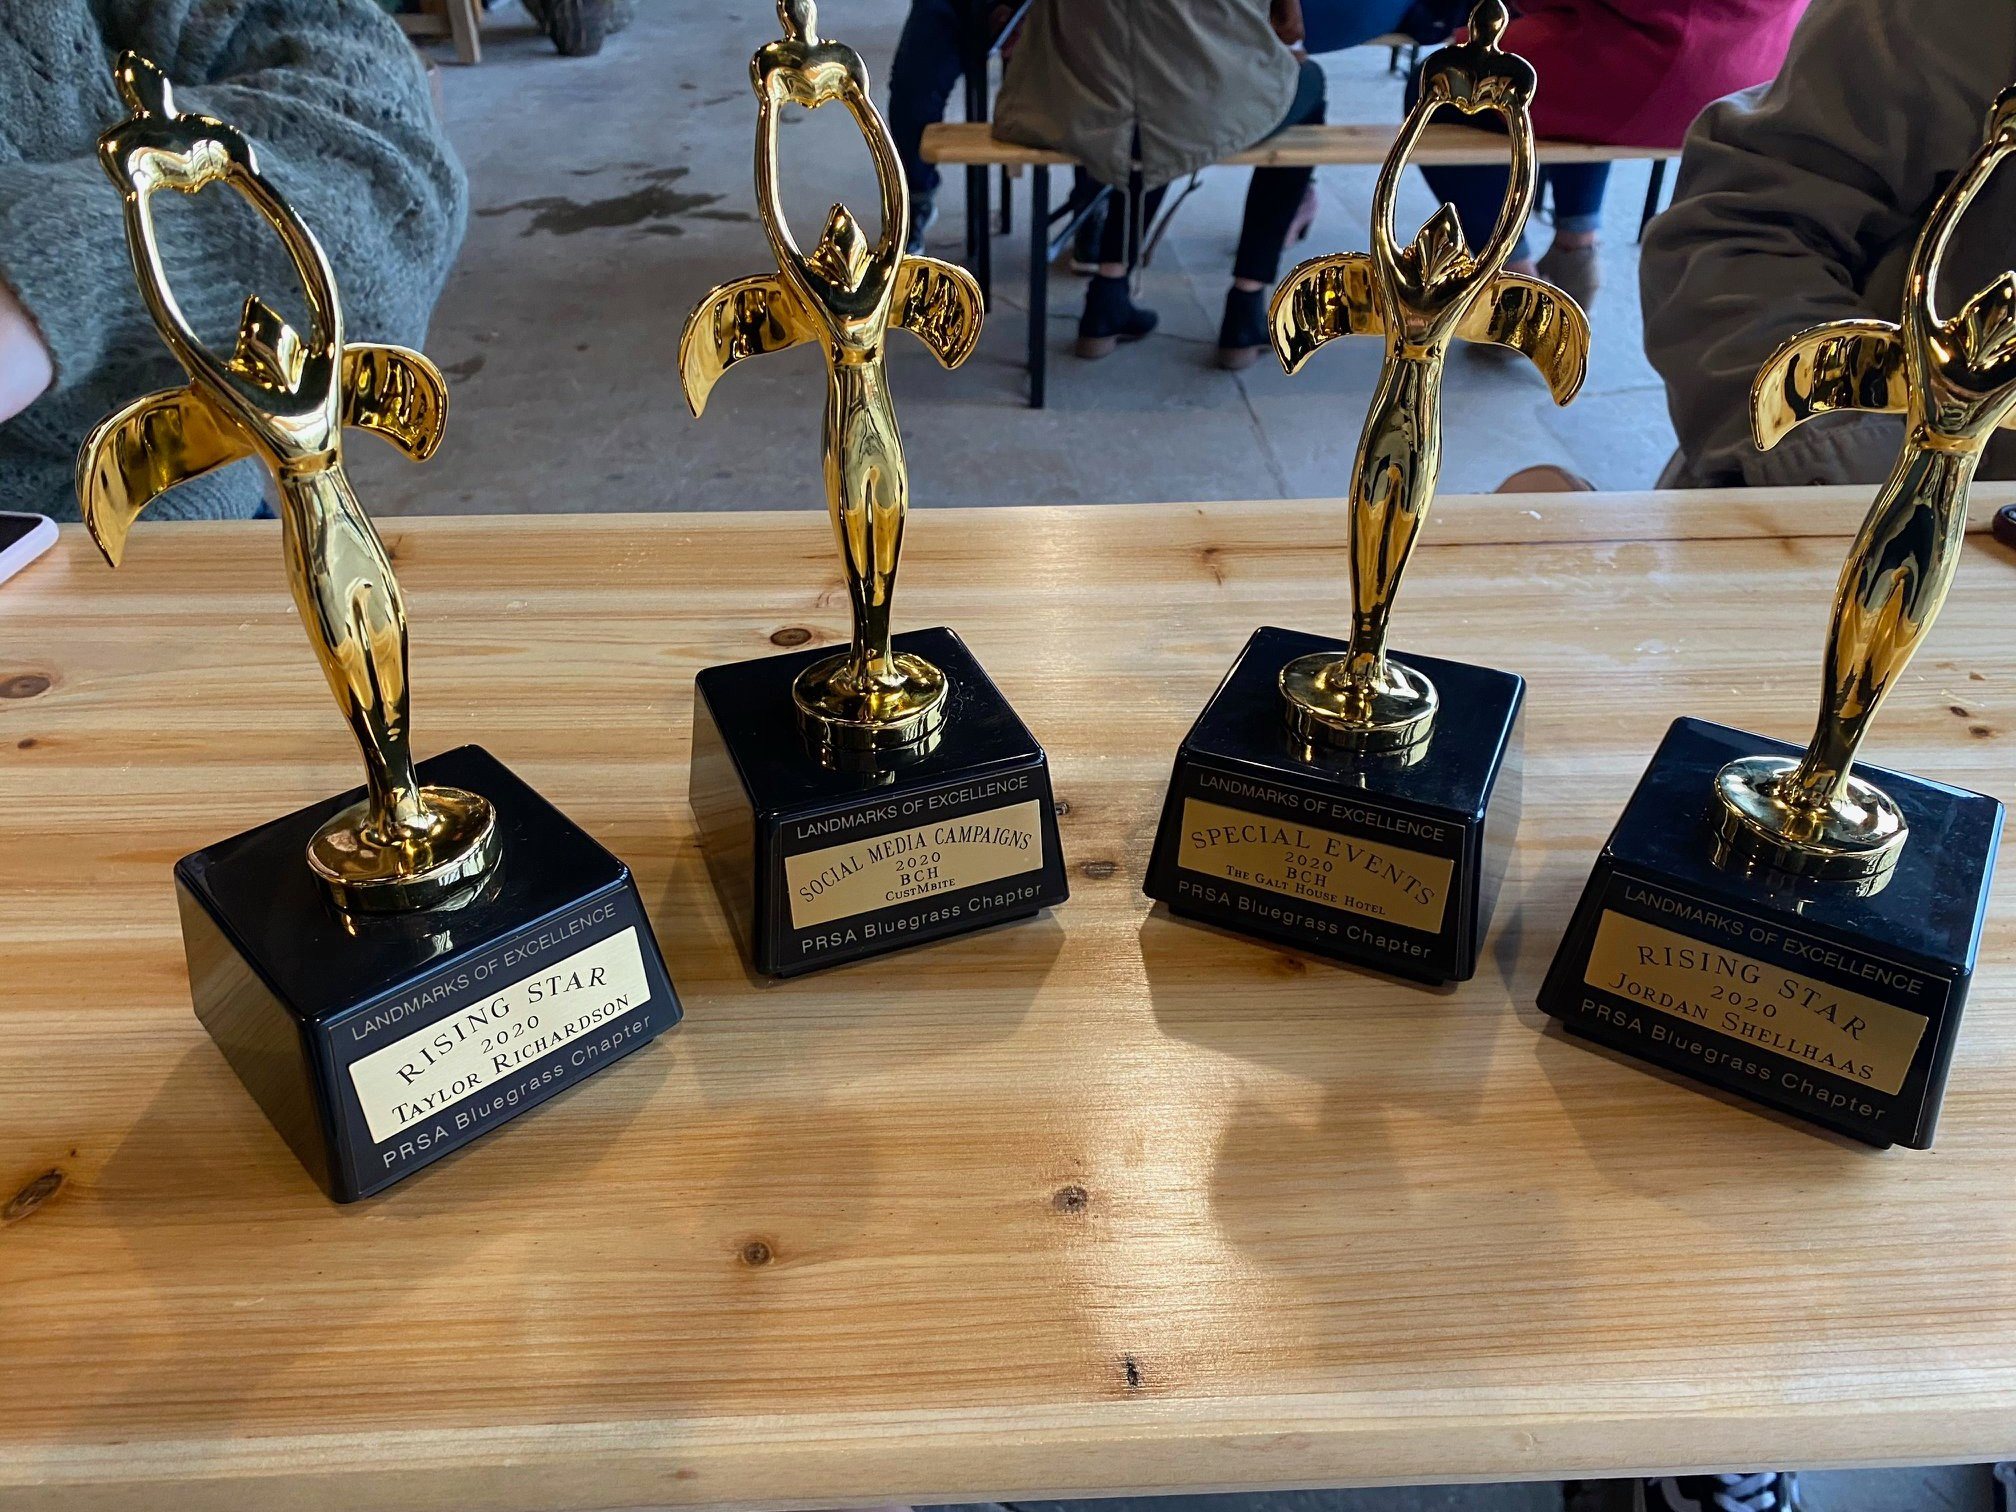 Bluegrass PRSA honors BCH with 17 Landmarks of Excellence Awards - Bandy Carroll Hellige